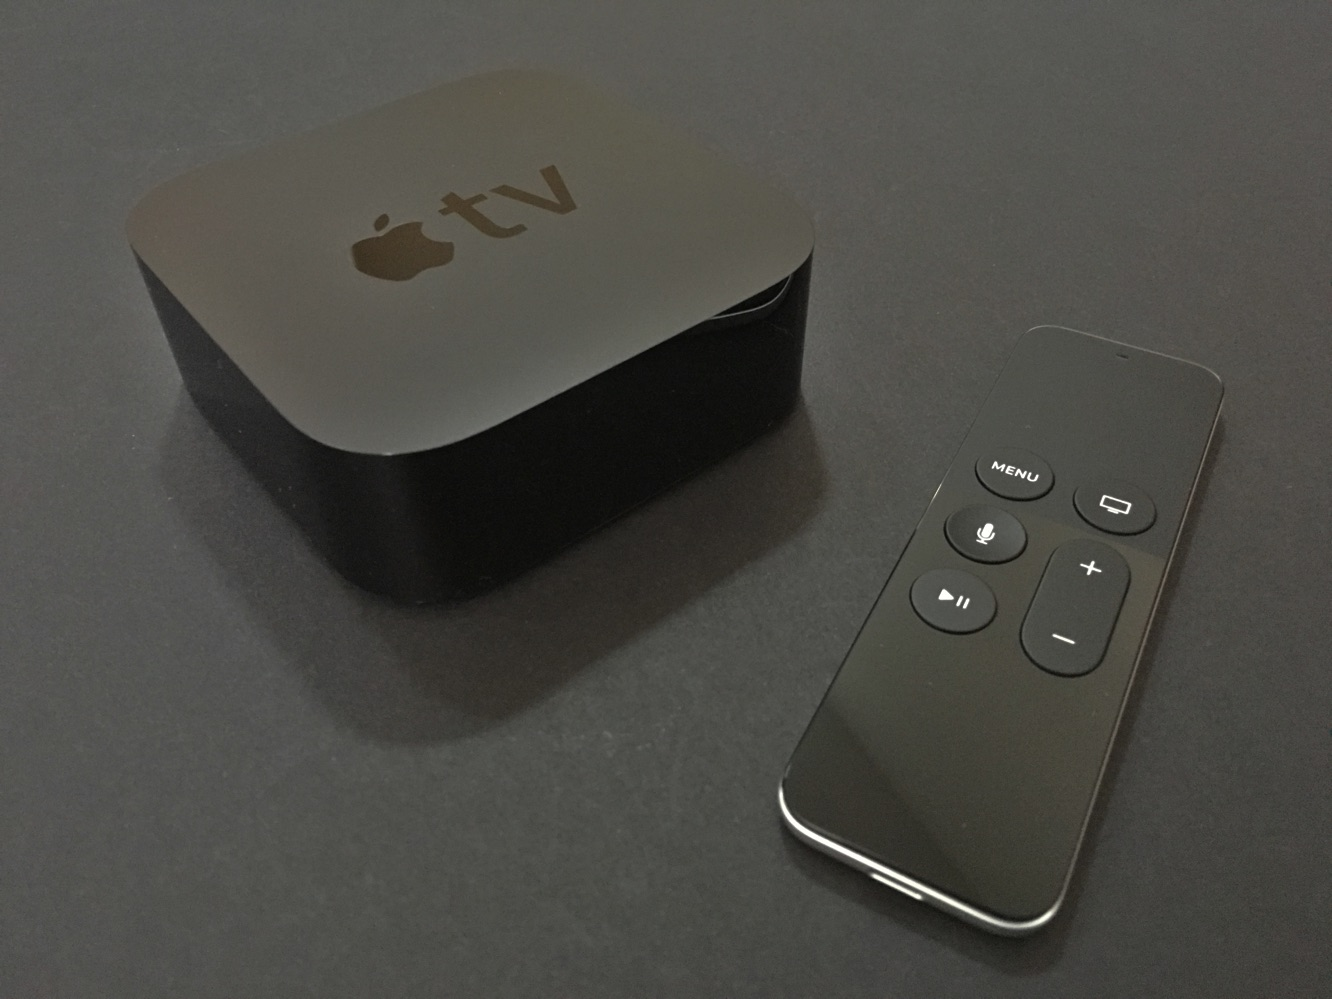 Apple releases minor tvOS 12.0.1 update